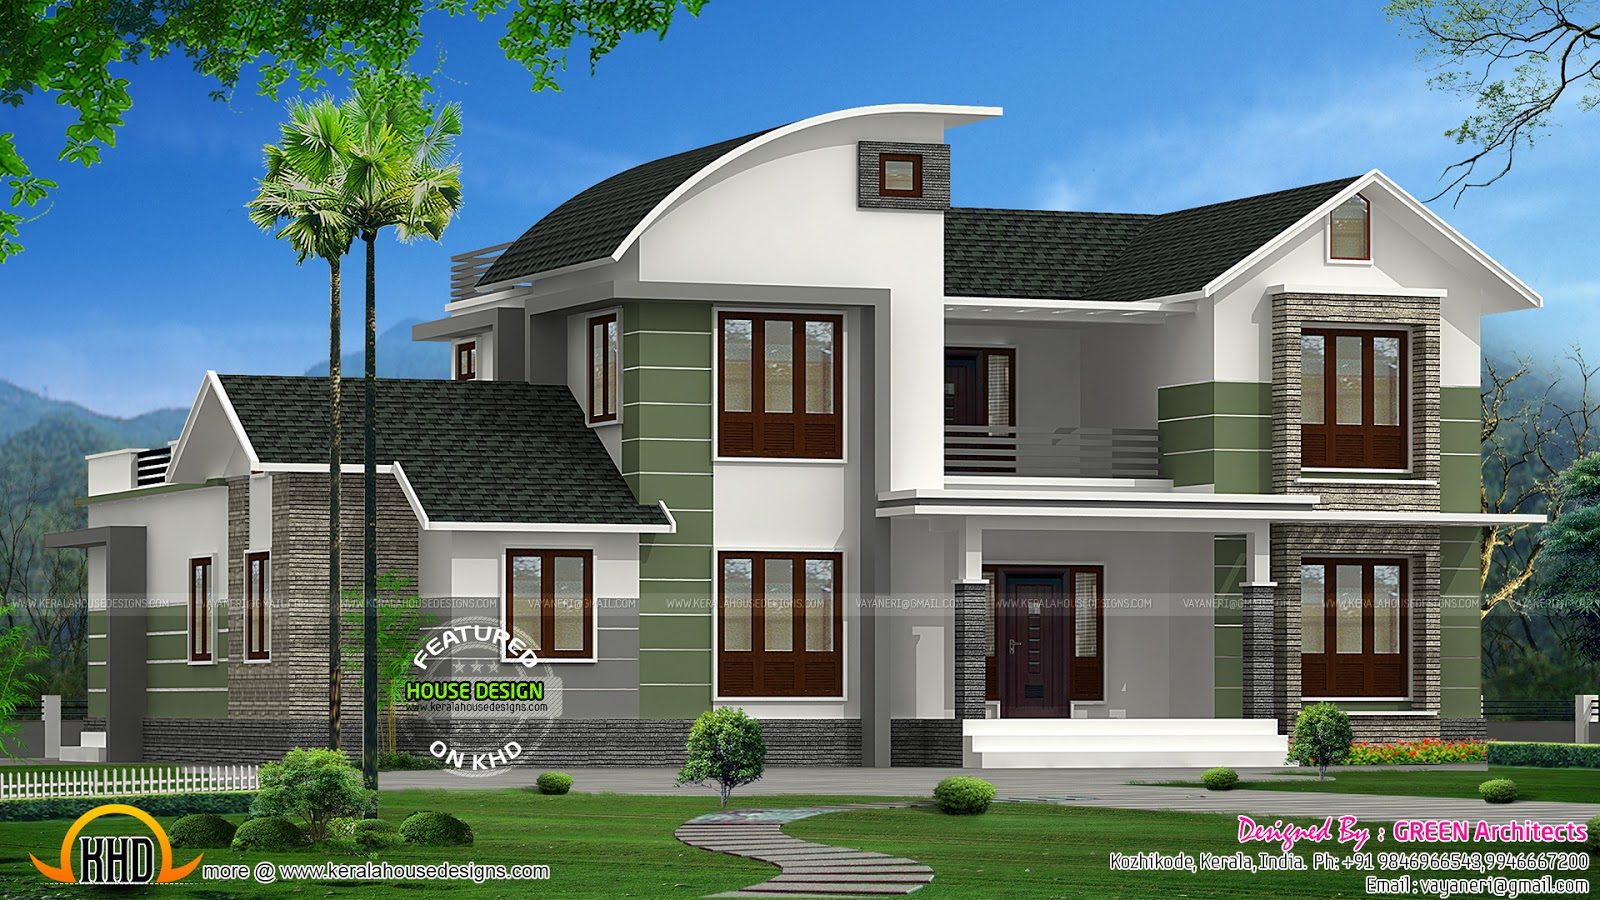 Modern Mix 2200 Sq Ft Home Kerala Home Design And Floor